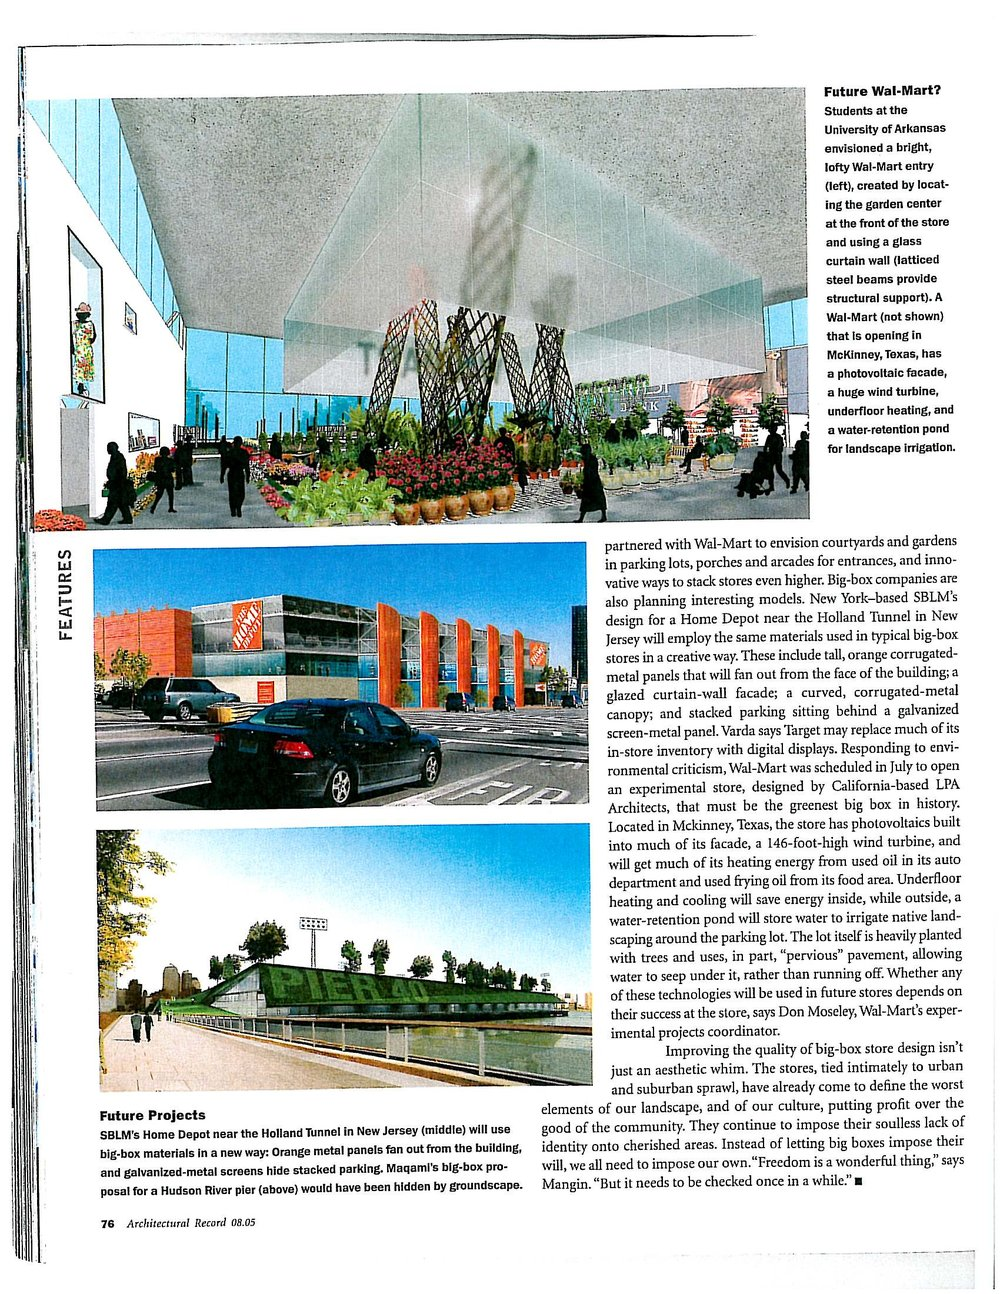 200508_Architectural Record Magazine_HD WMT_Page_7.jpg